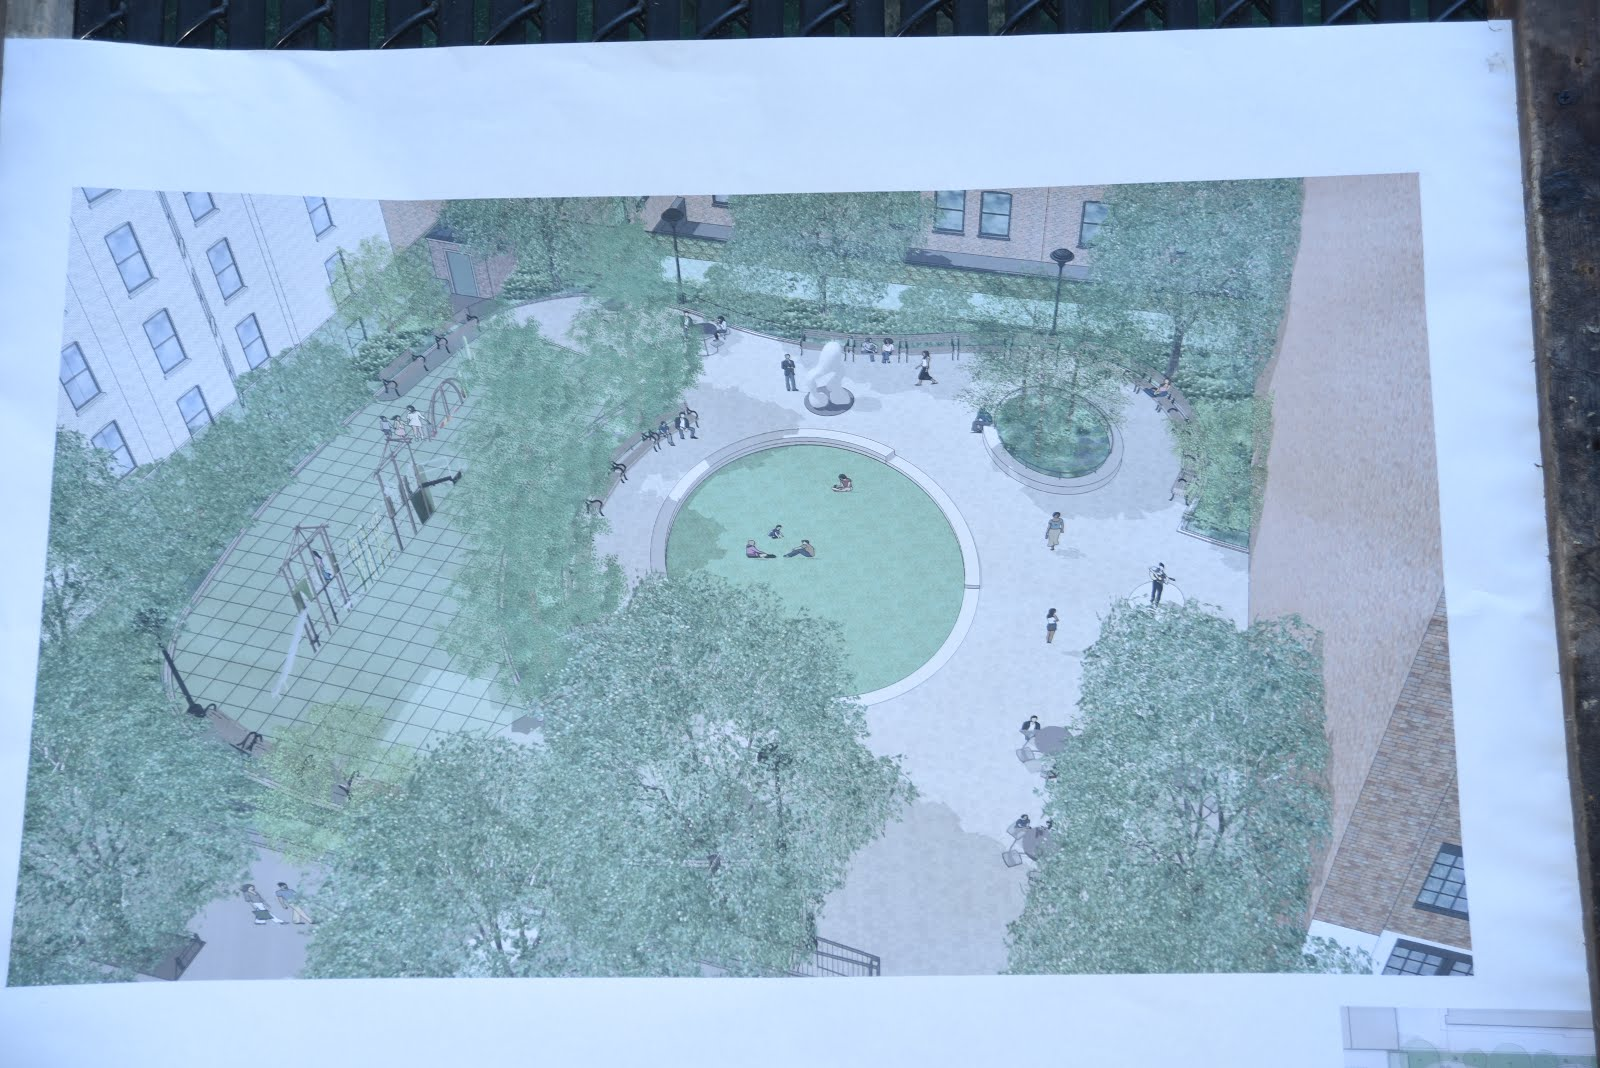 play equipment for several age groups plantings trees seating and space for rotating public art displays chelsea green is projected to open by 2019